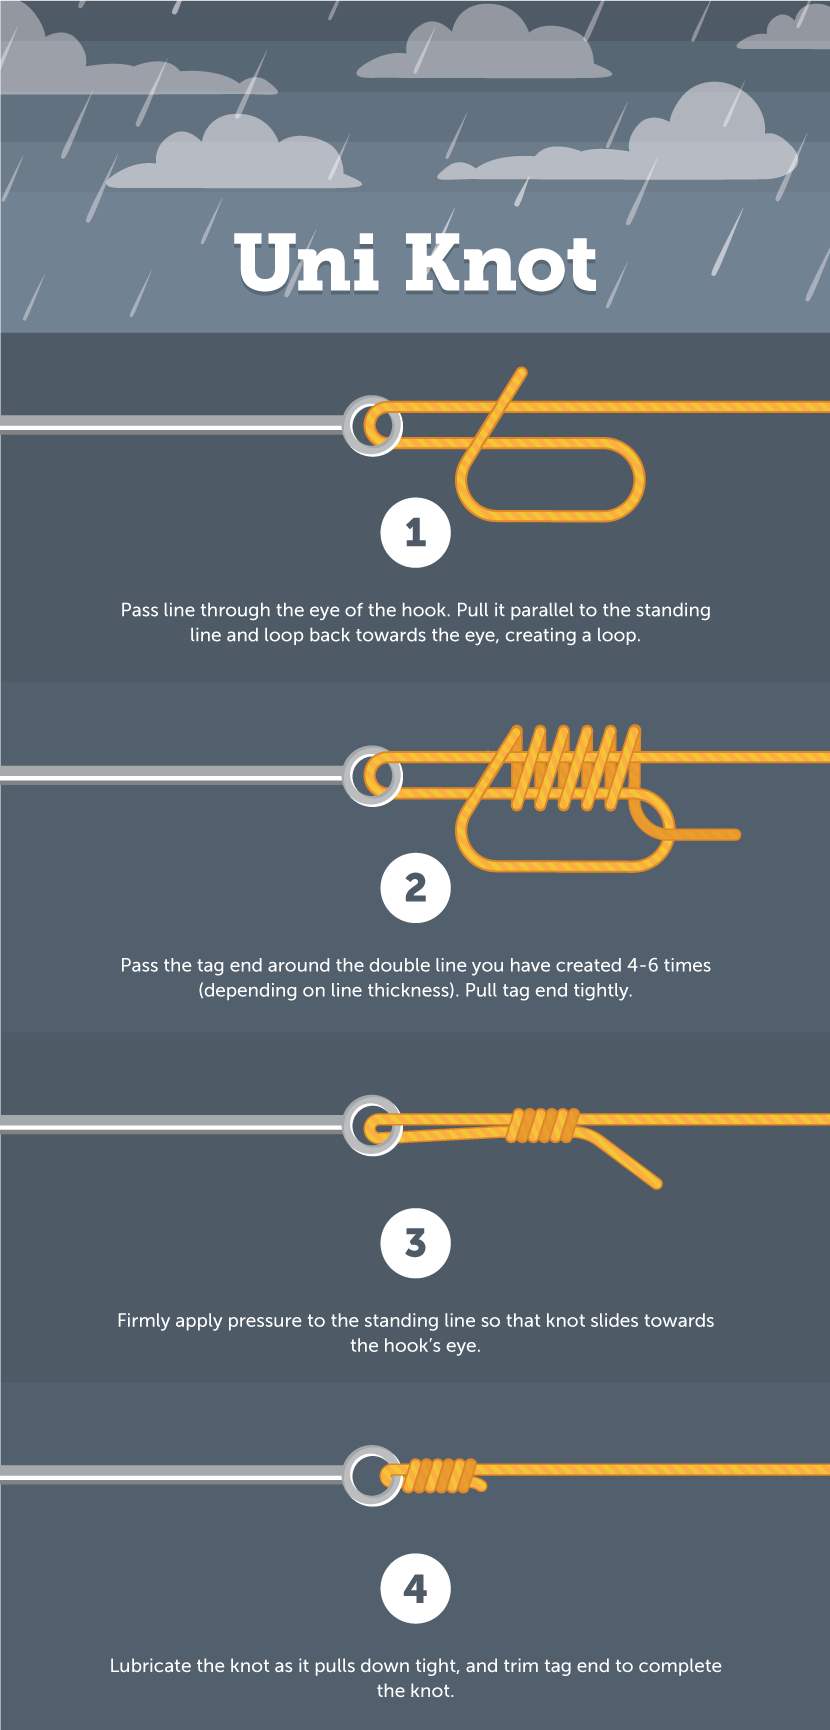 Self-tightening knots for clothesline, for bracelet, for fishing line, for spool